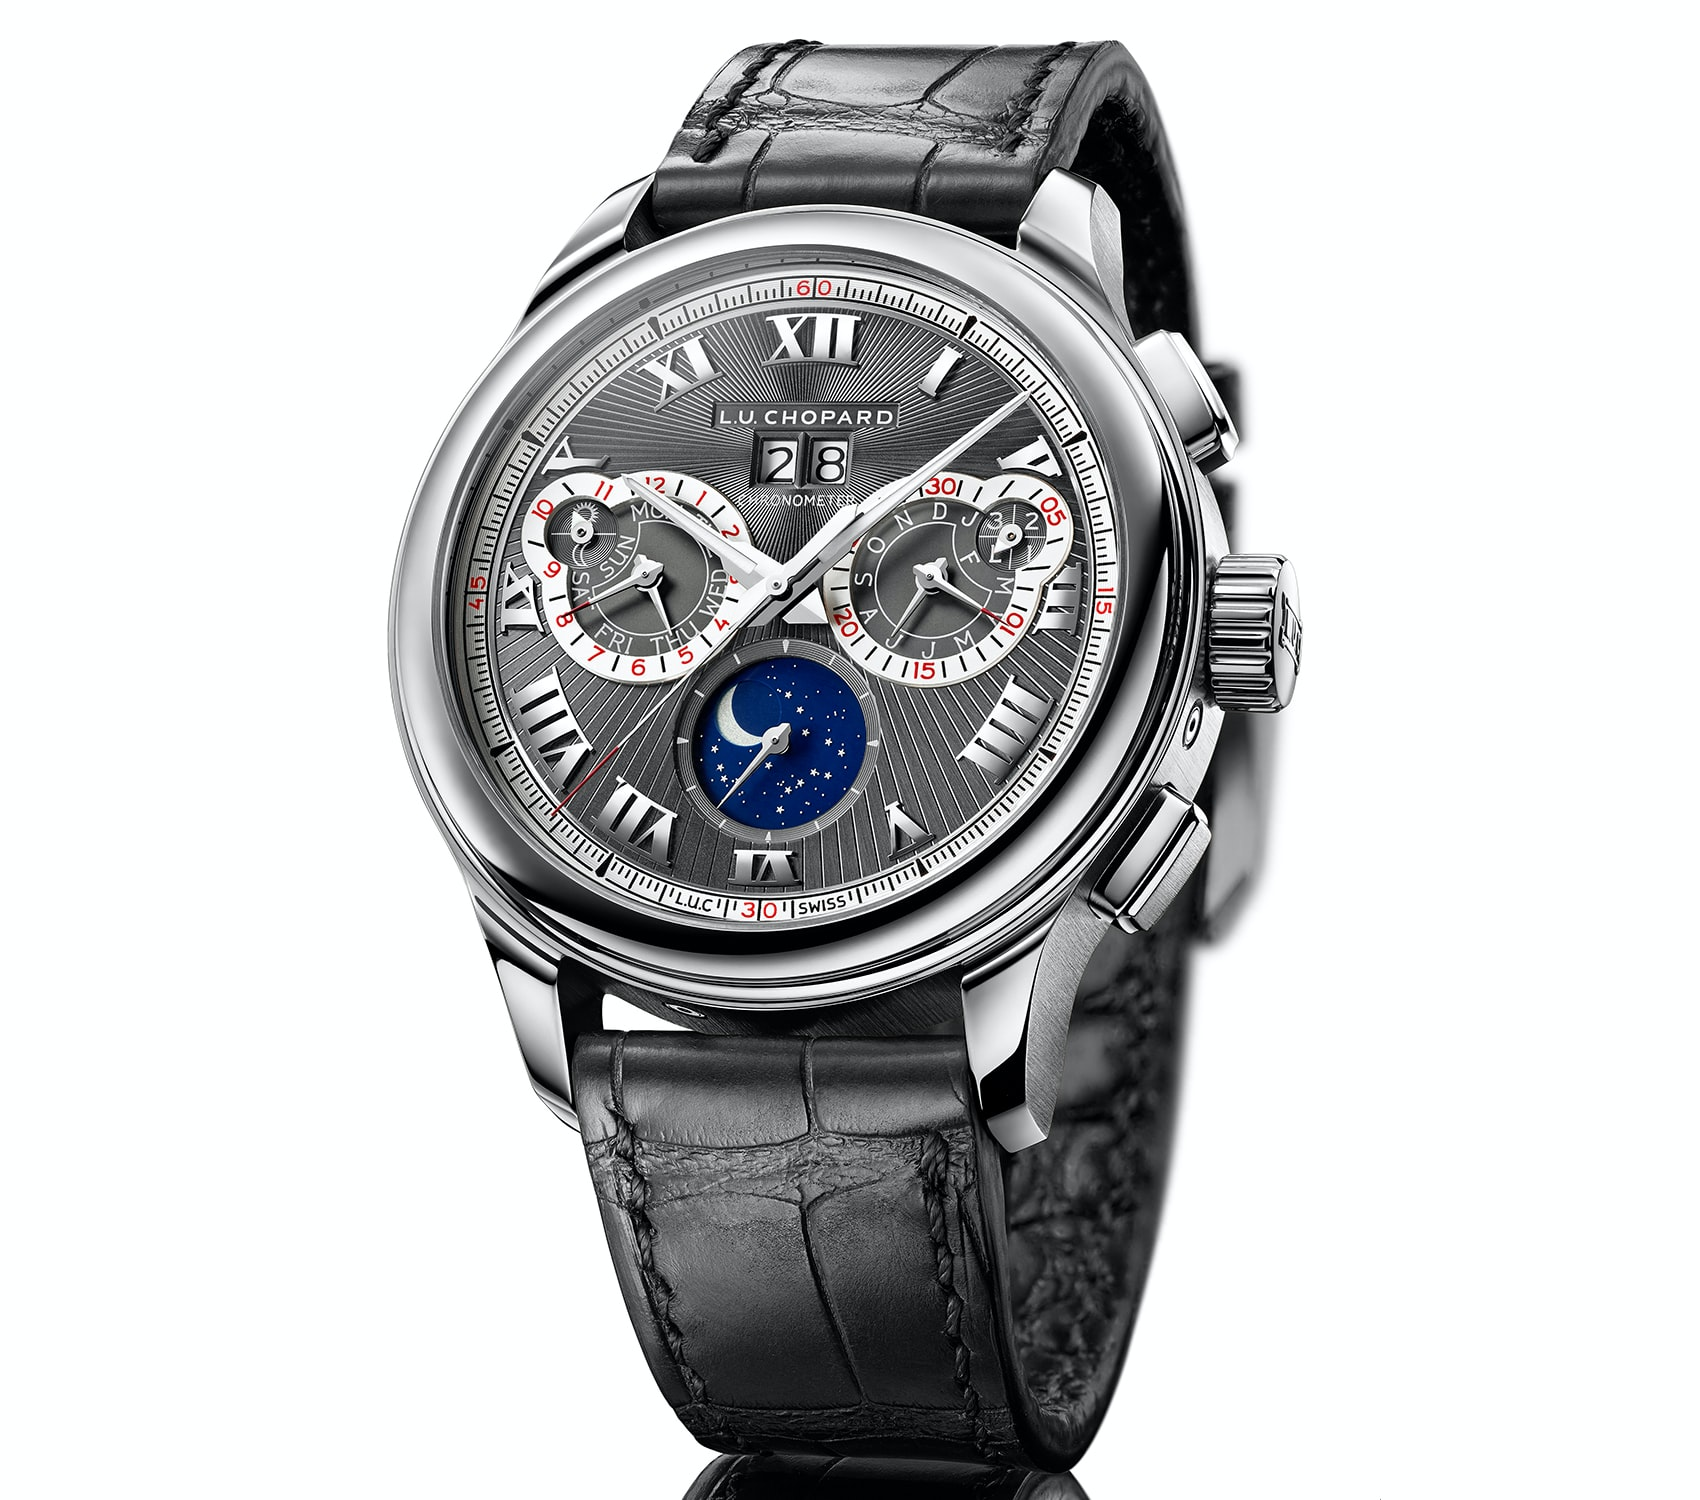 chopard luc perpetual chrono soldier Introducing: The Chopard L.U.C. Perpetual Chrono Introducing: The Chopard L.U.C. Perpetual Chrono aaaa